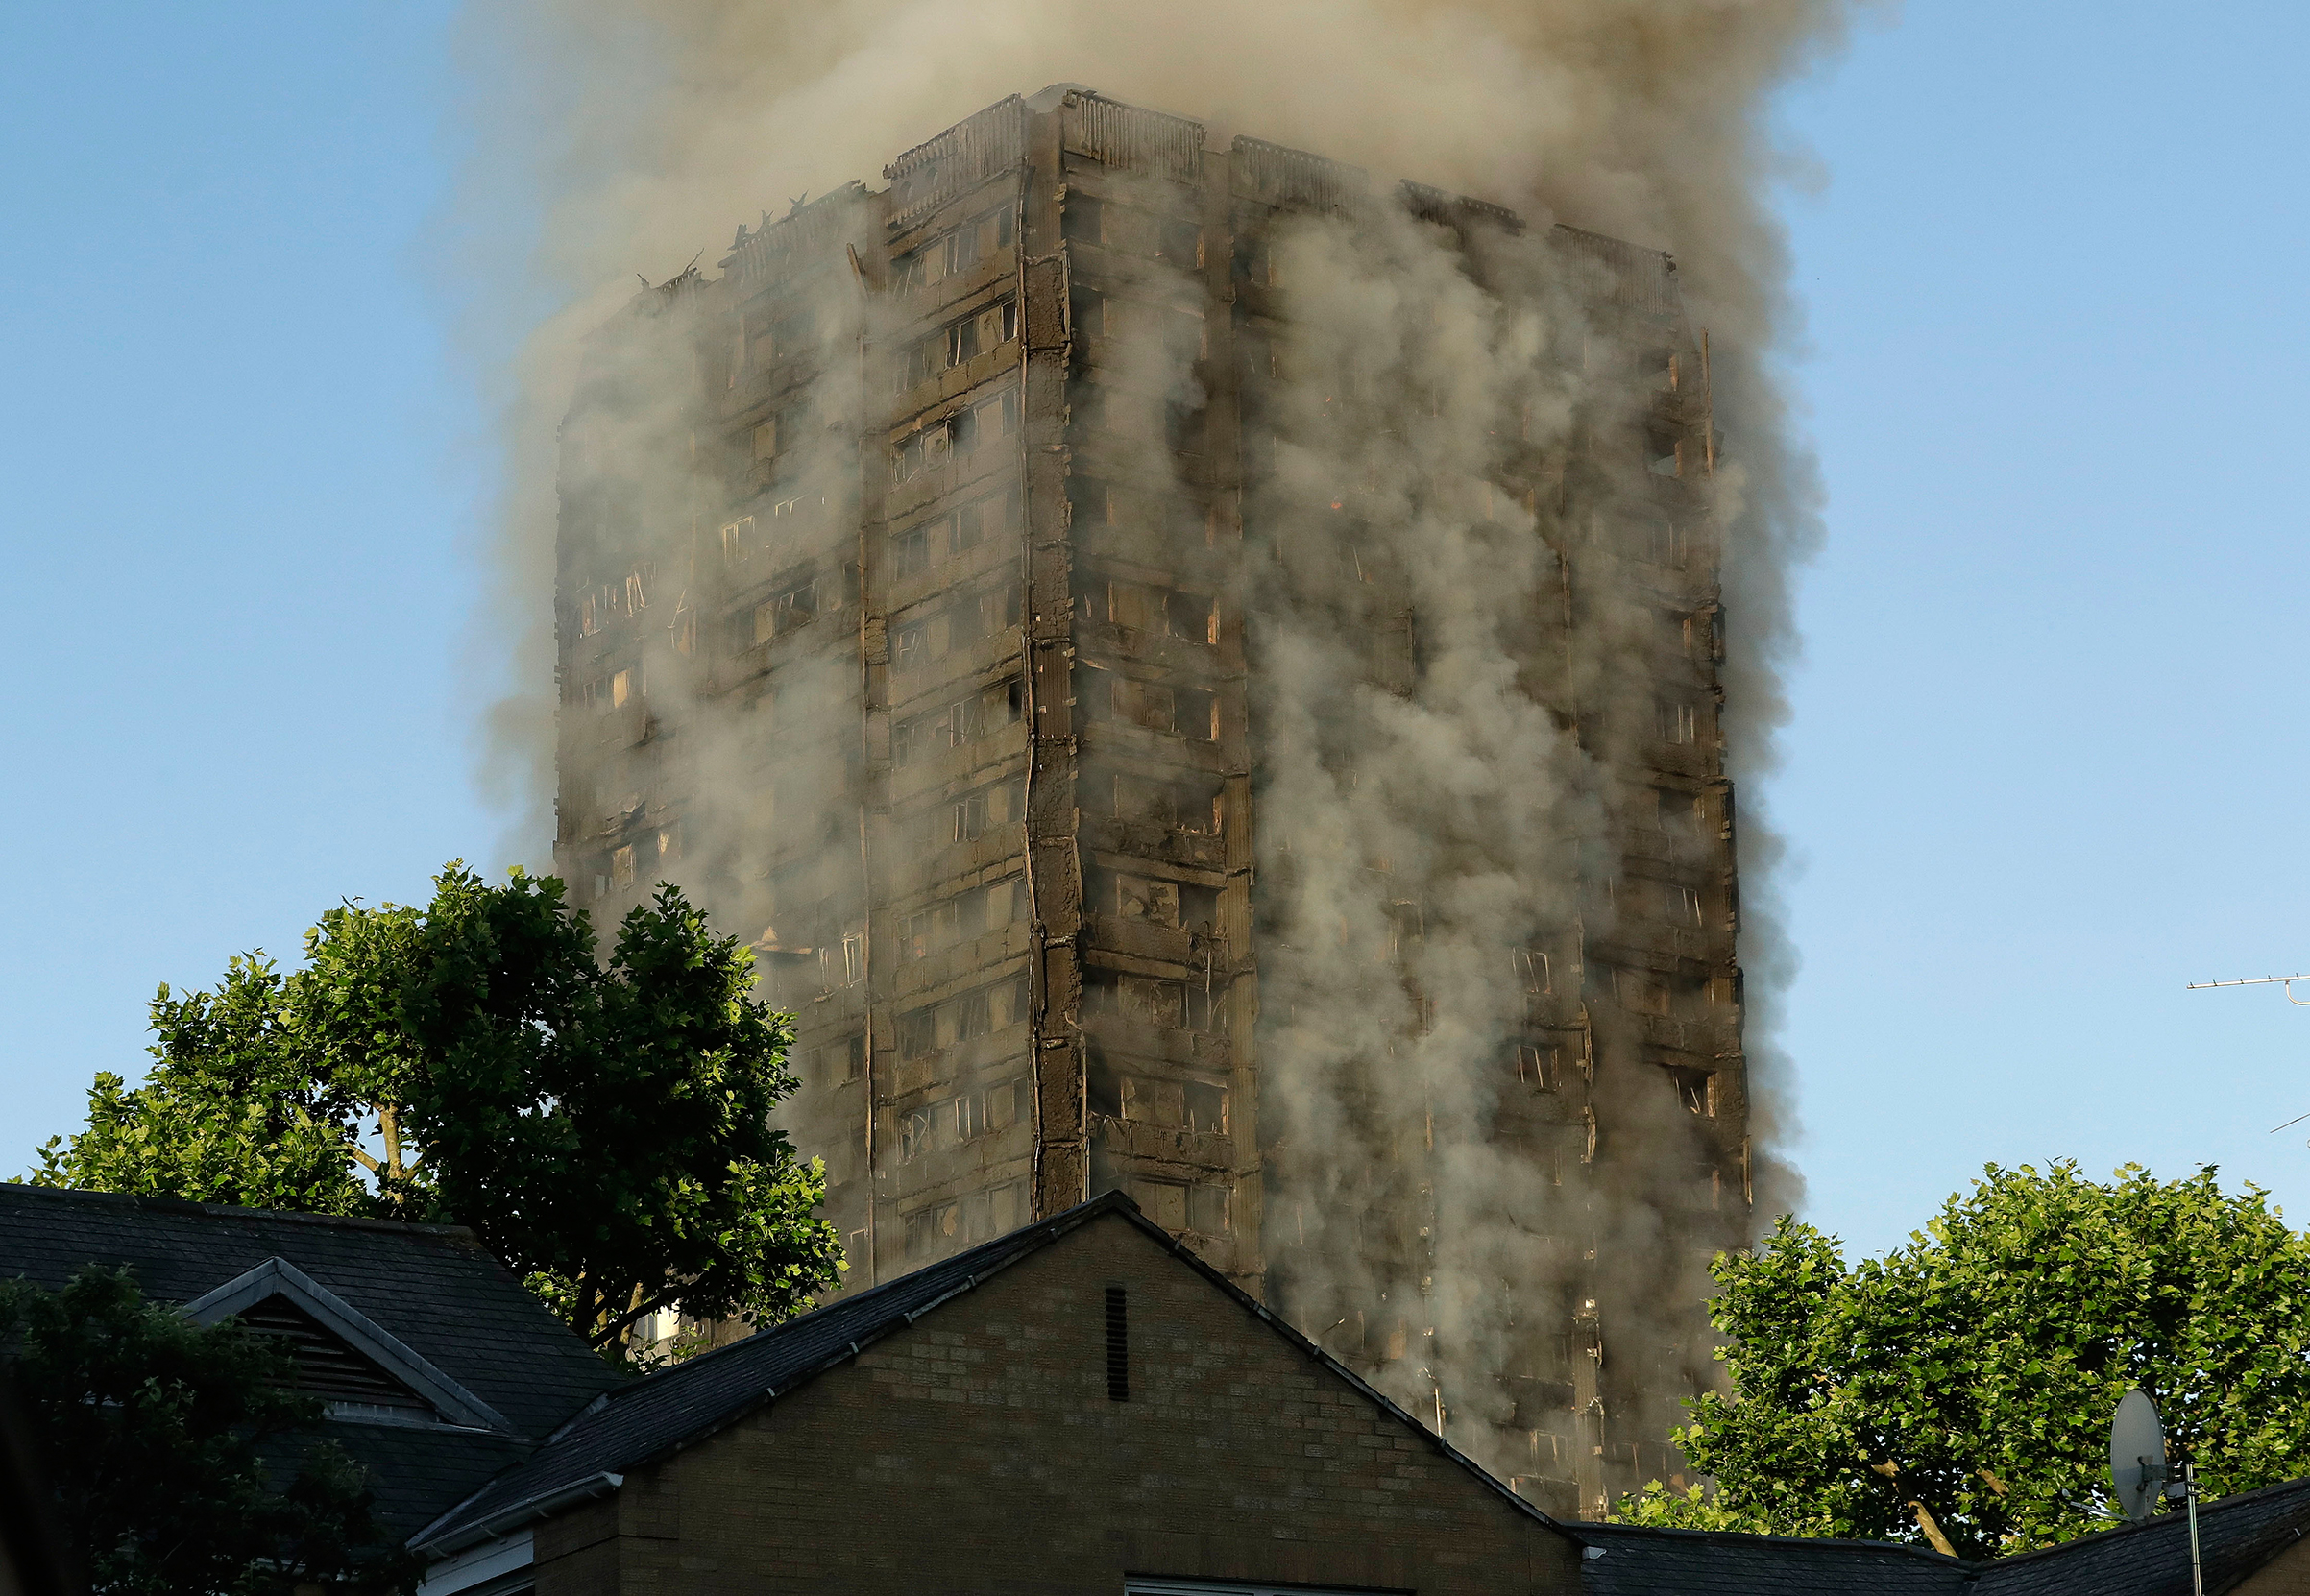 Smoke rises from a high-rise building that caught fire overnight in West London on June 14, 2017.